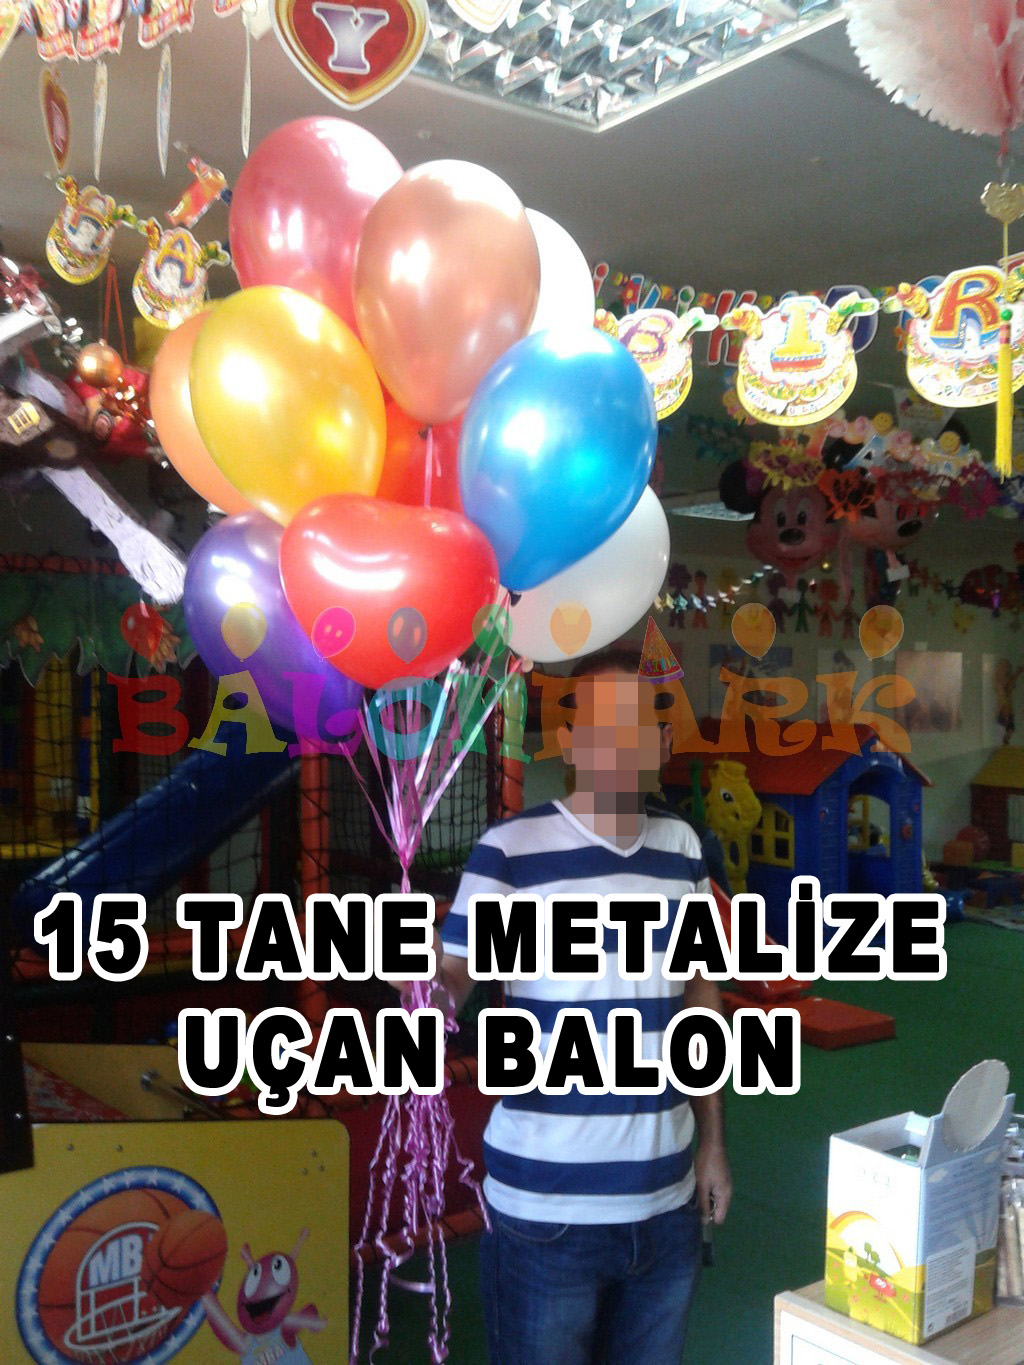 15 uçan metalize balon